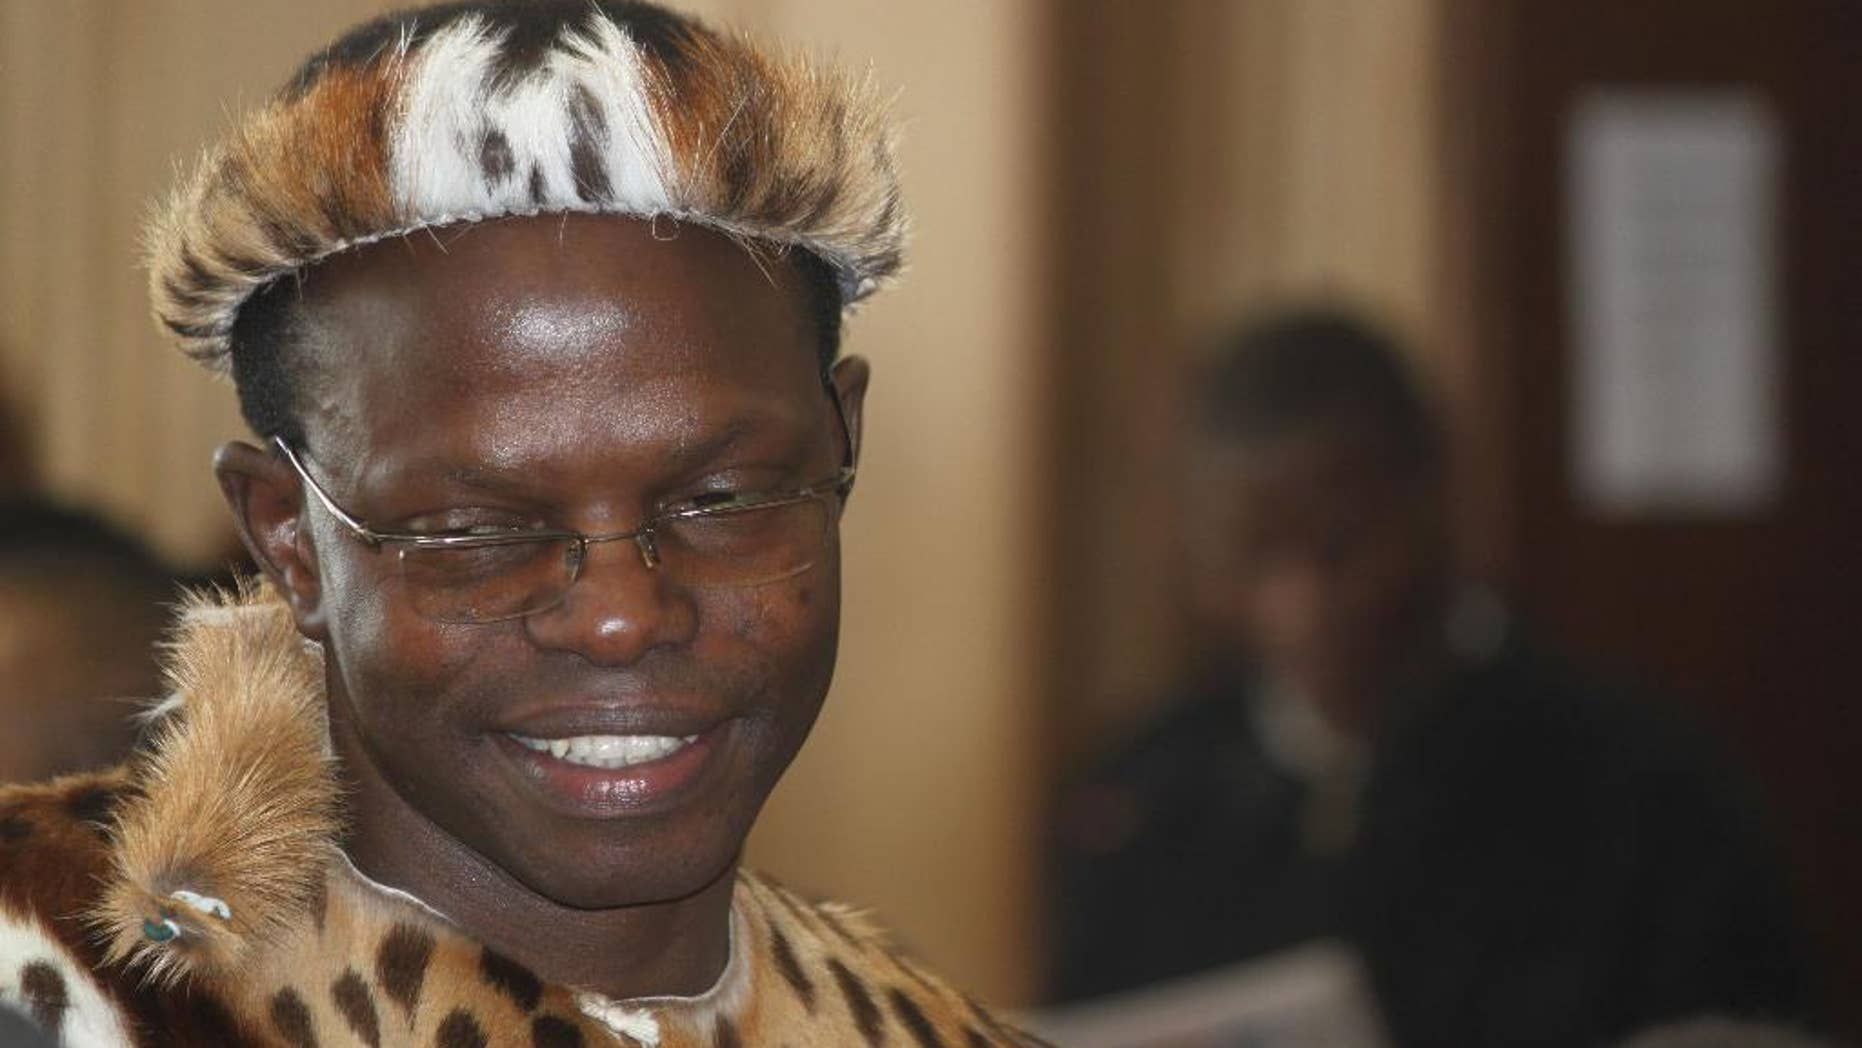 In this photo taken Wednesday, June 4, 2014, lawyer Thulani Maseko, appears in court in the traditional animal skin garb of a Zulu warrior, in Mbabane, Swaziland. Maseko delivered a blistering attack on the Swazi judiciary and political system in a trial that has focused fresh attention on human rights issues in a country who's authoritarian system gets little scrutiny in international forums because of the country's small size and strategic insignificance. (AP Photo/Nkosingiphile Myeni-The Nation Magazine)